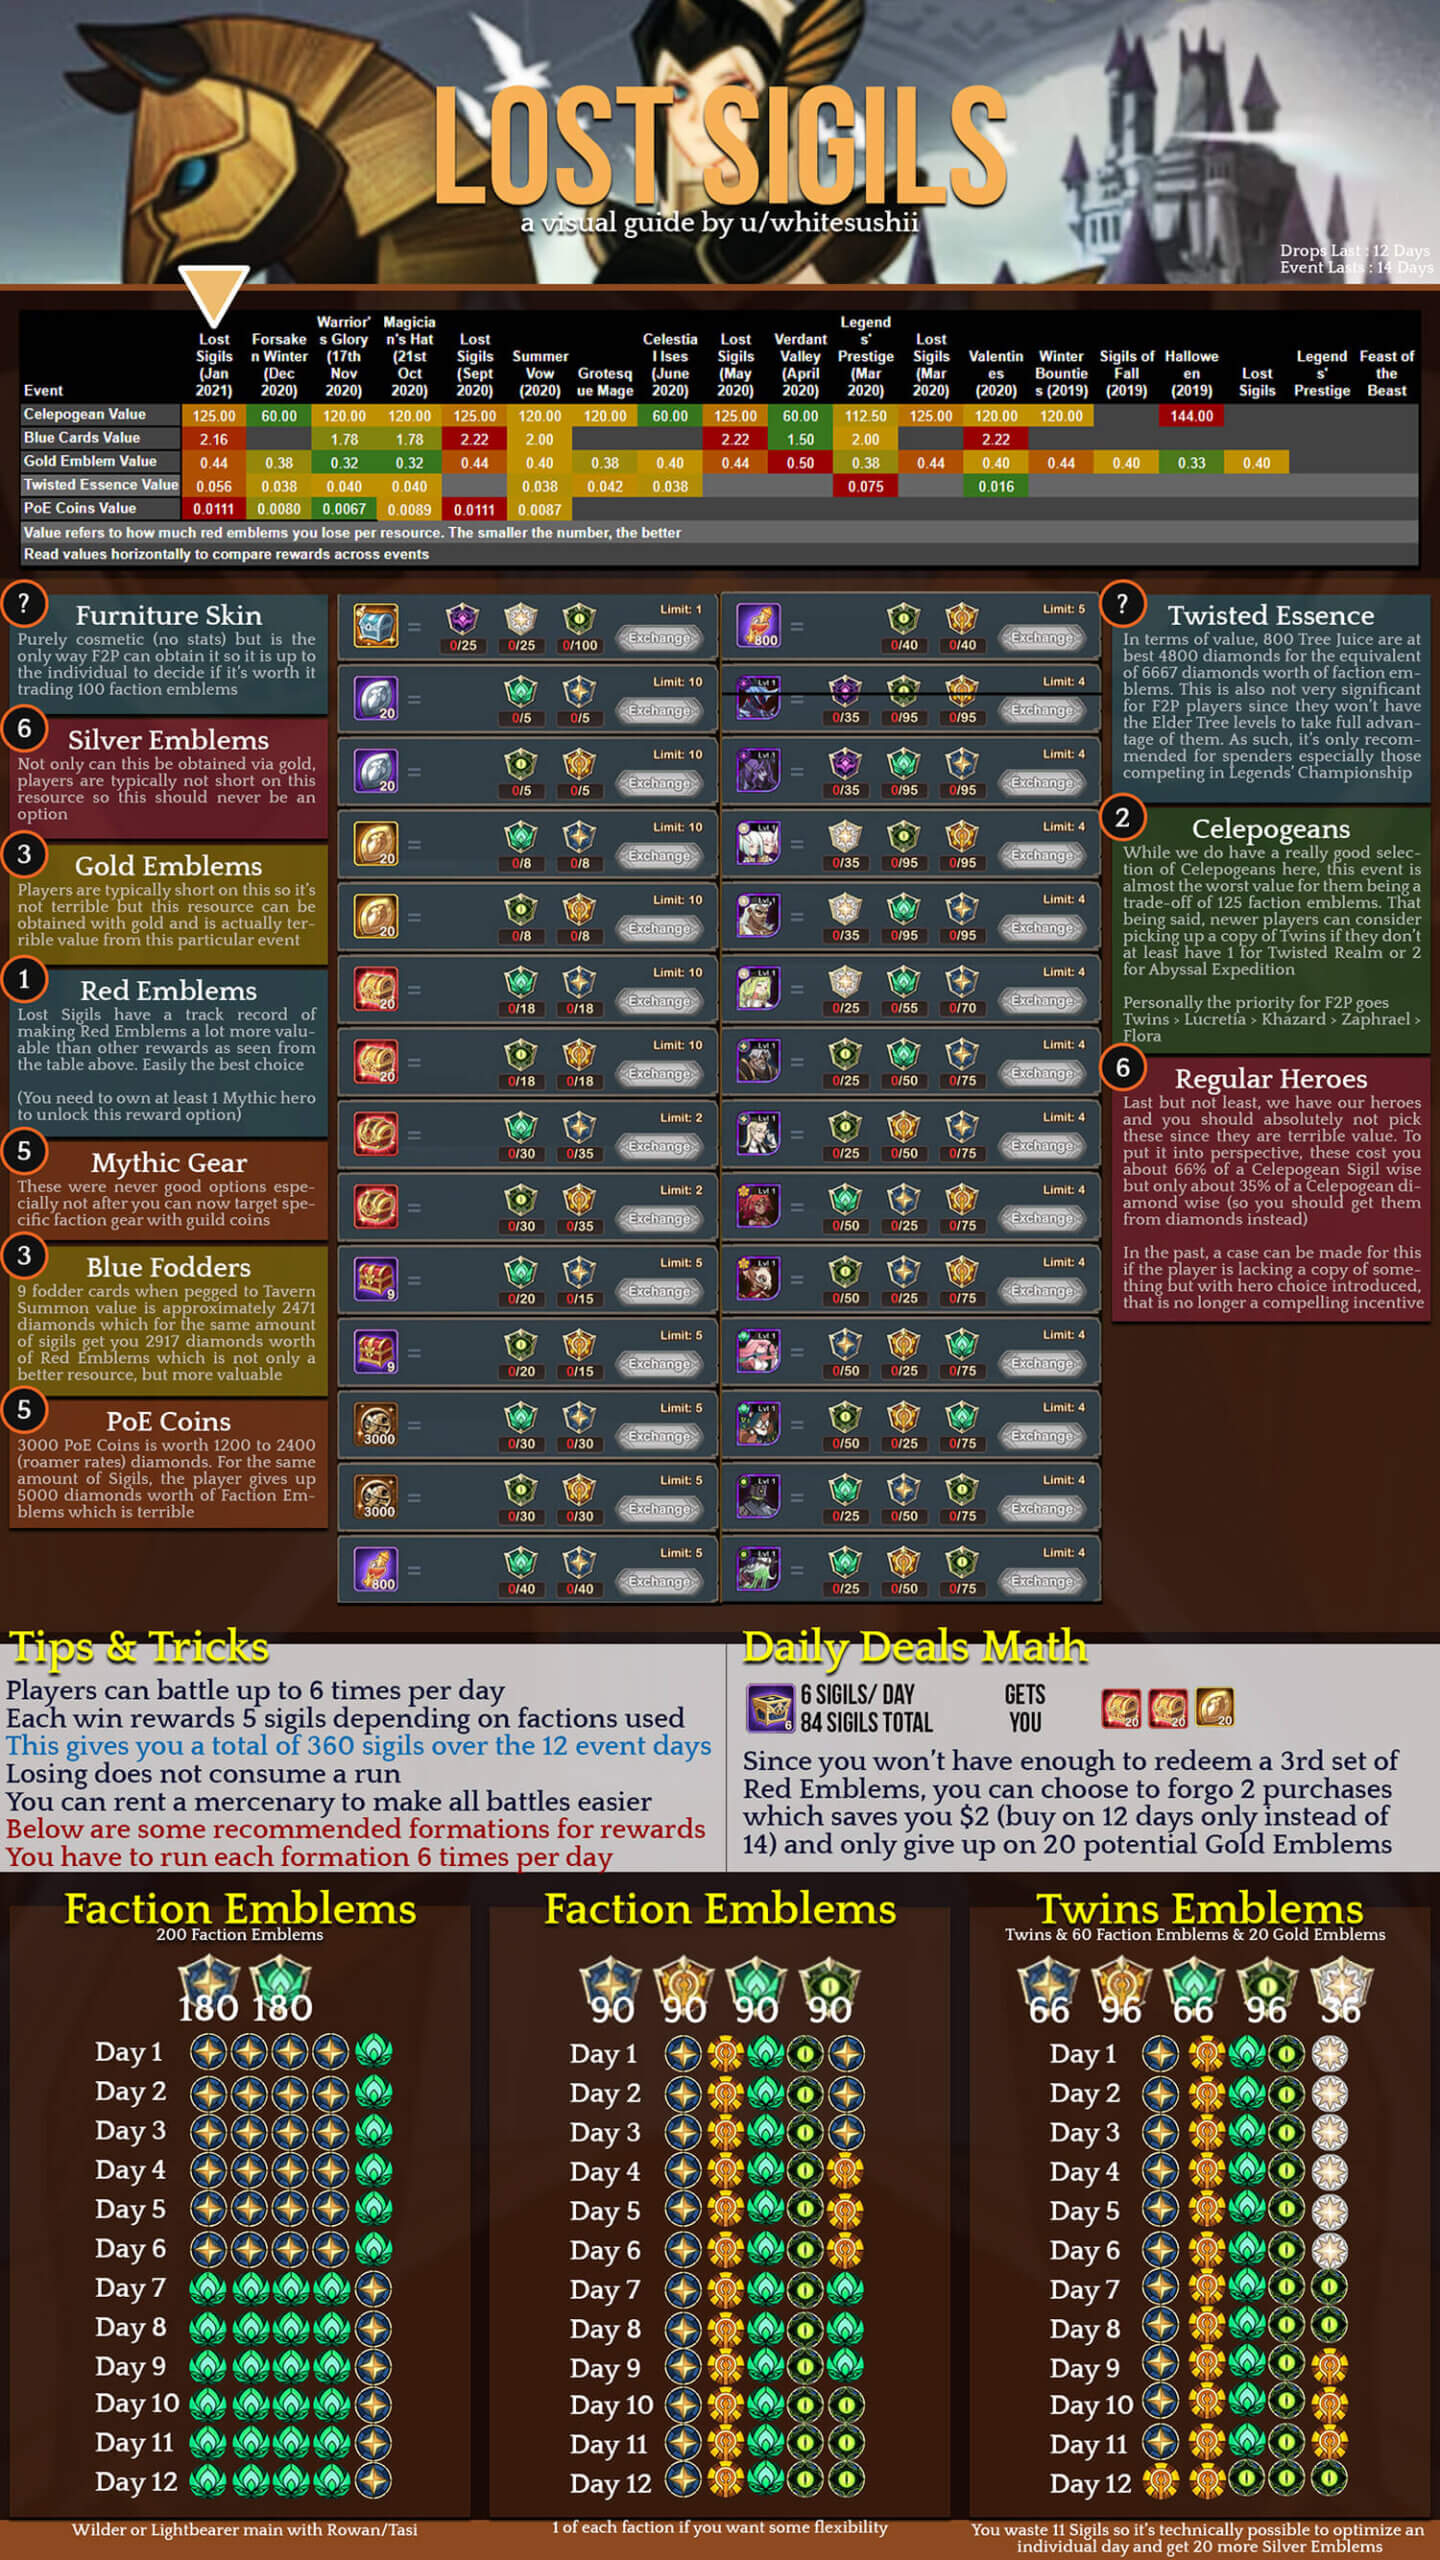 the lost sigils team infographic (1)